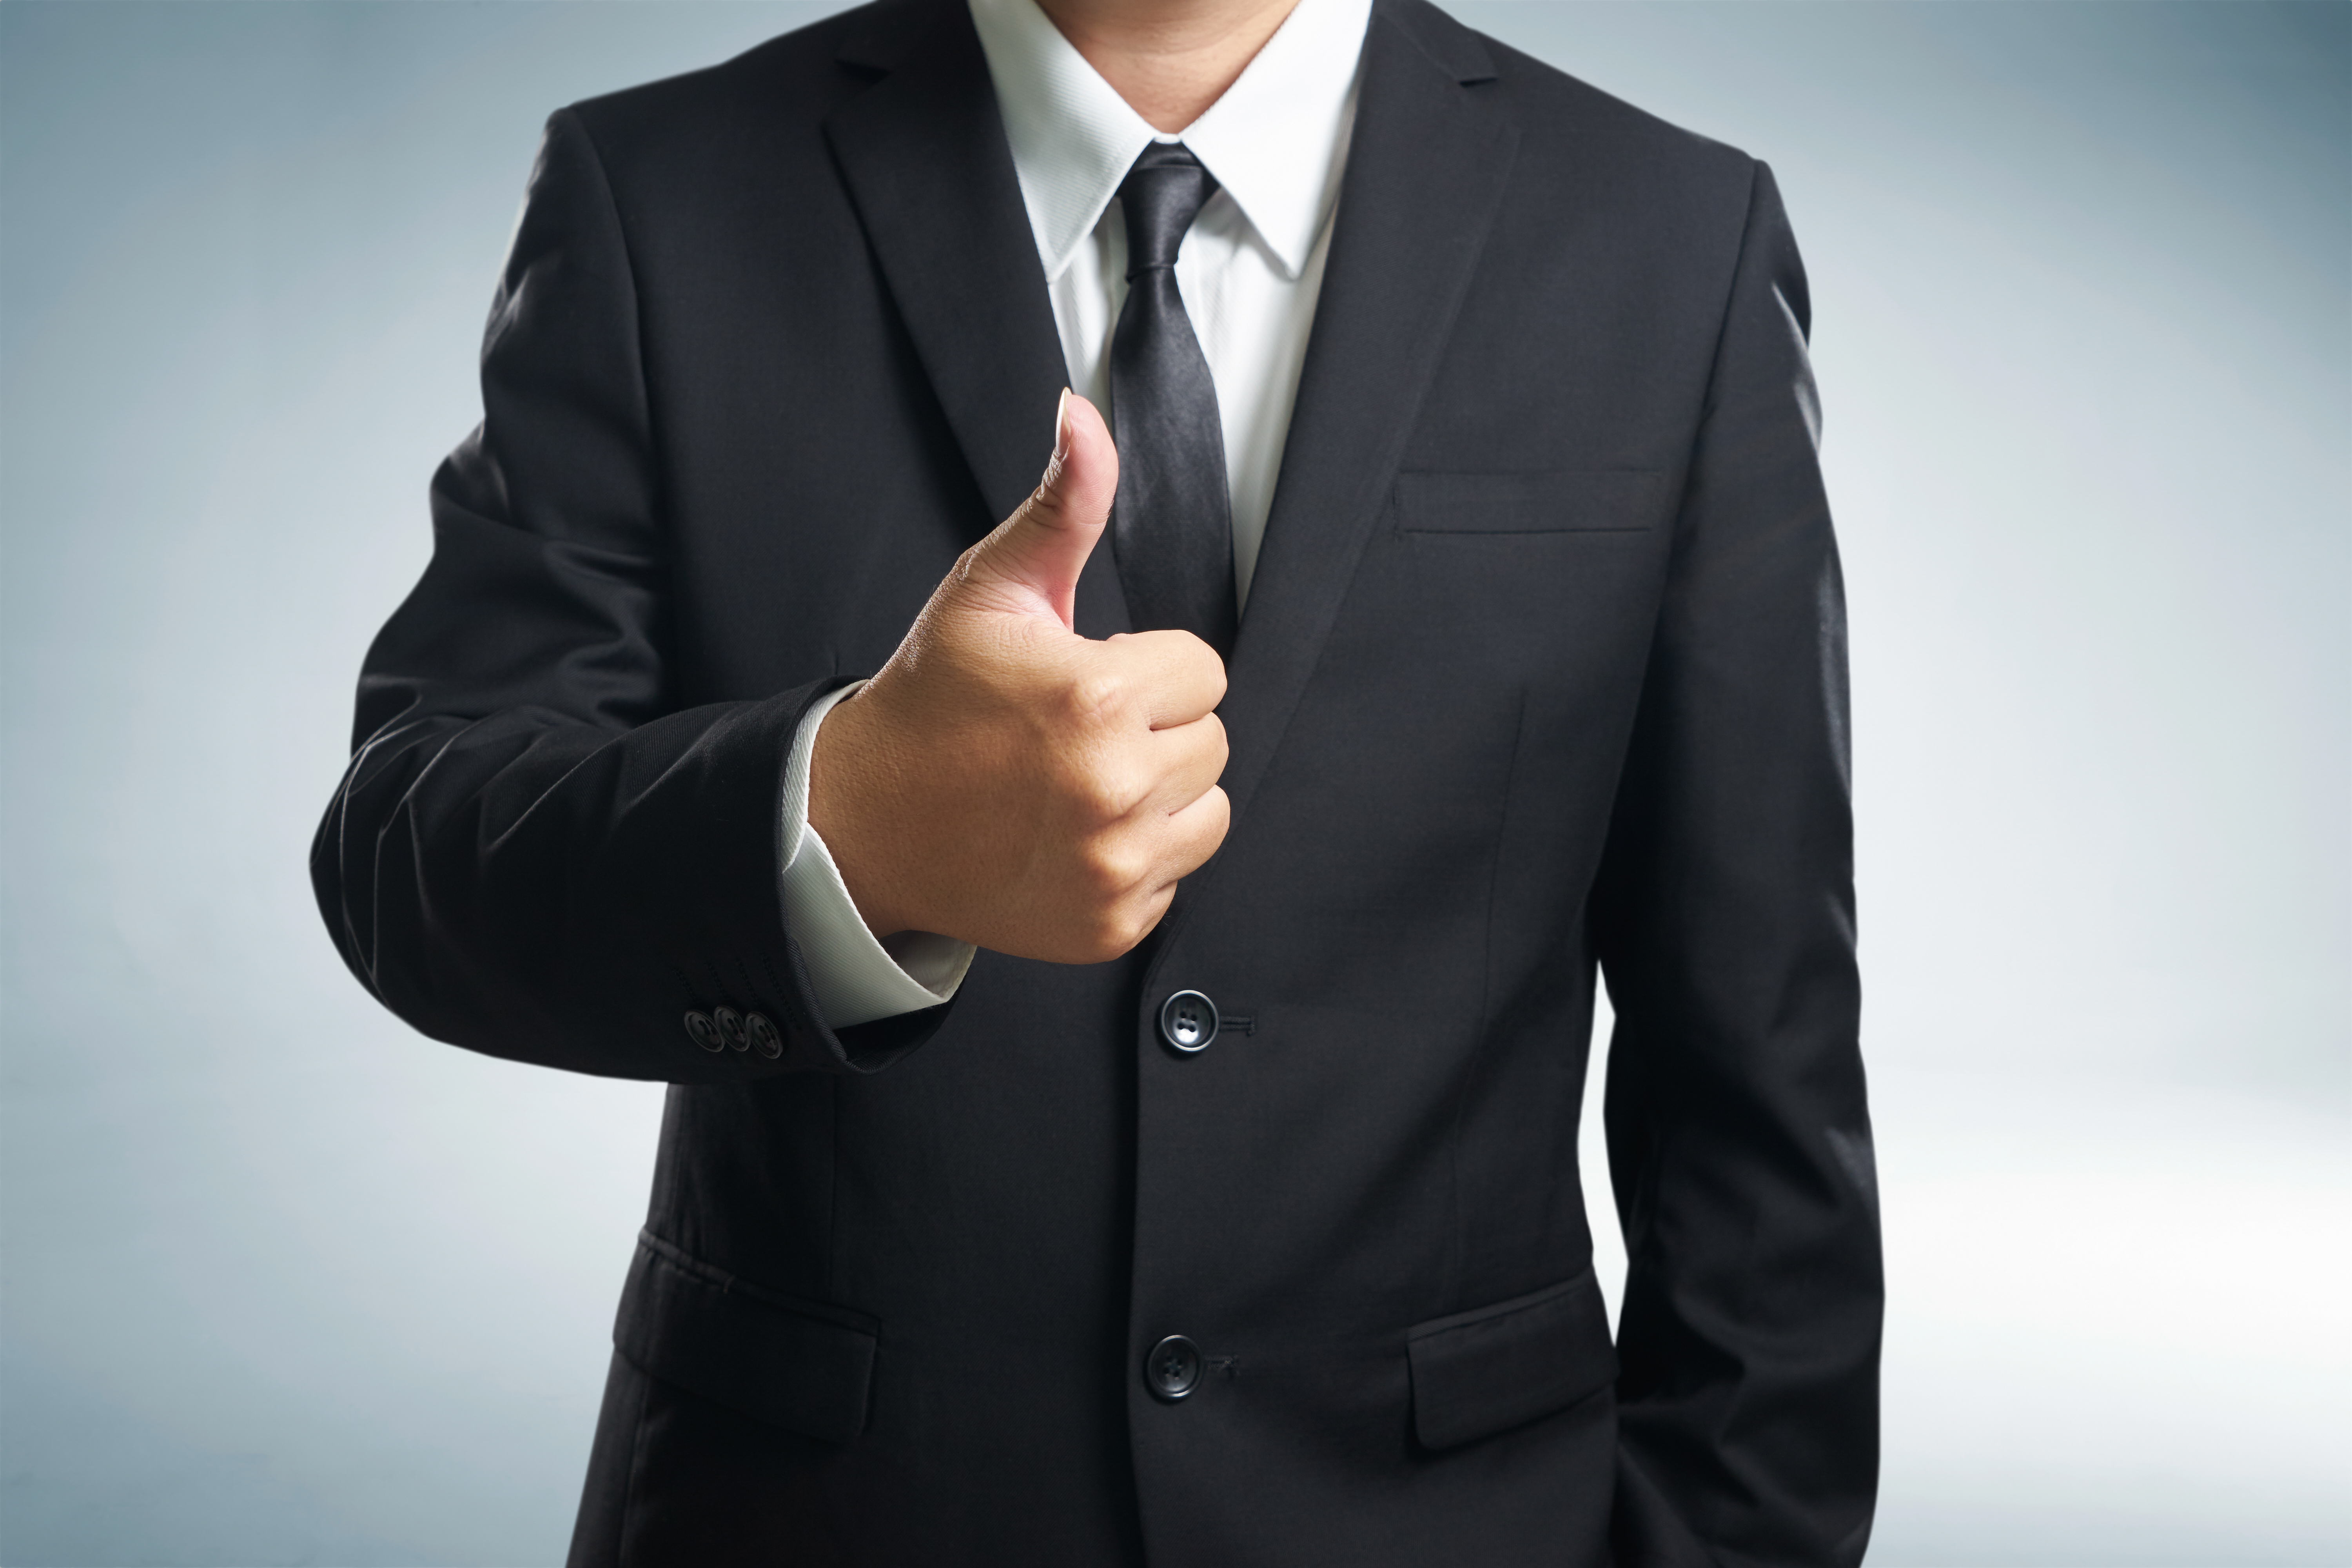 Retained Search Firms - Professional in suite with thumbs-up